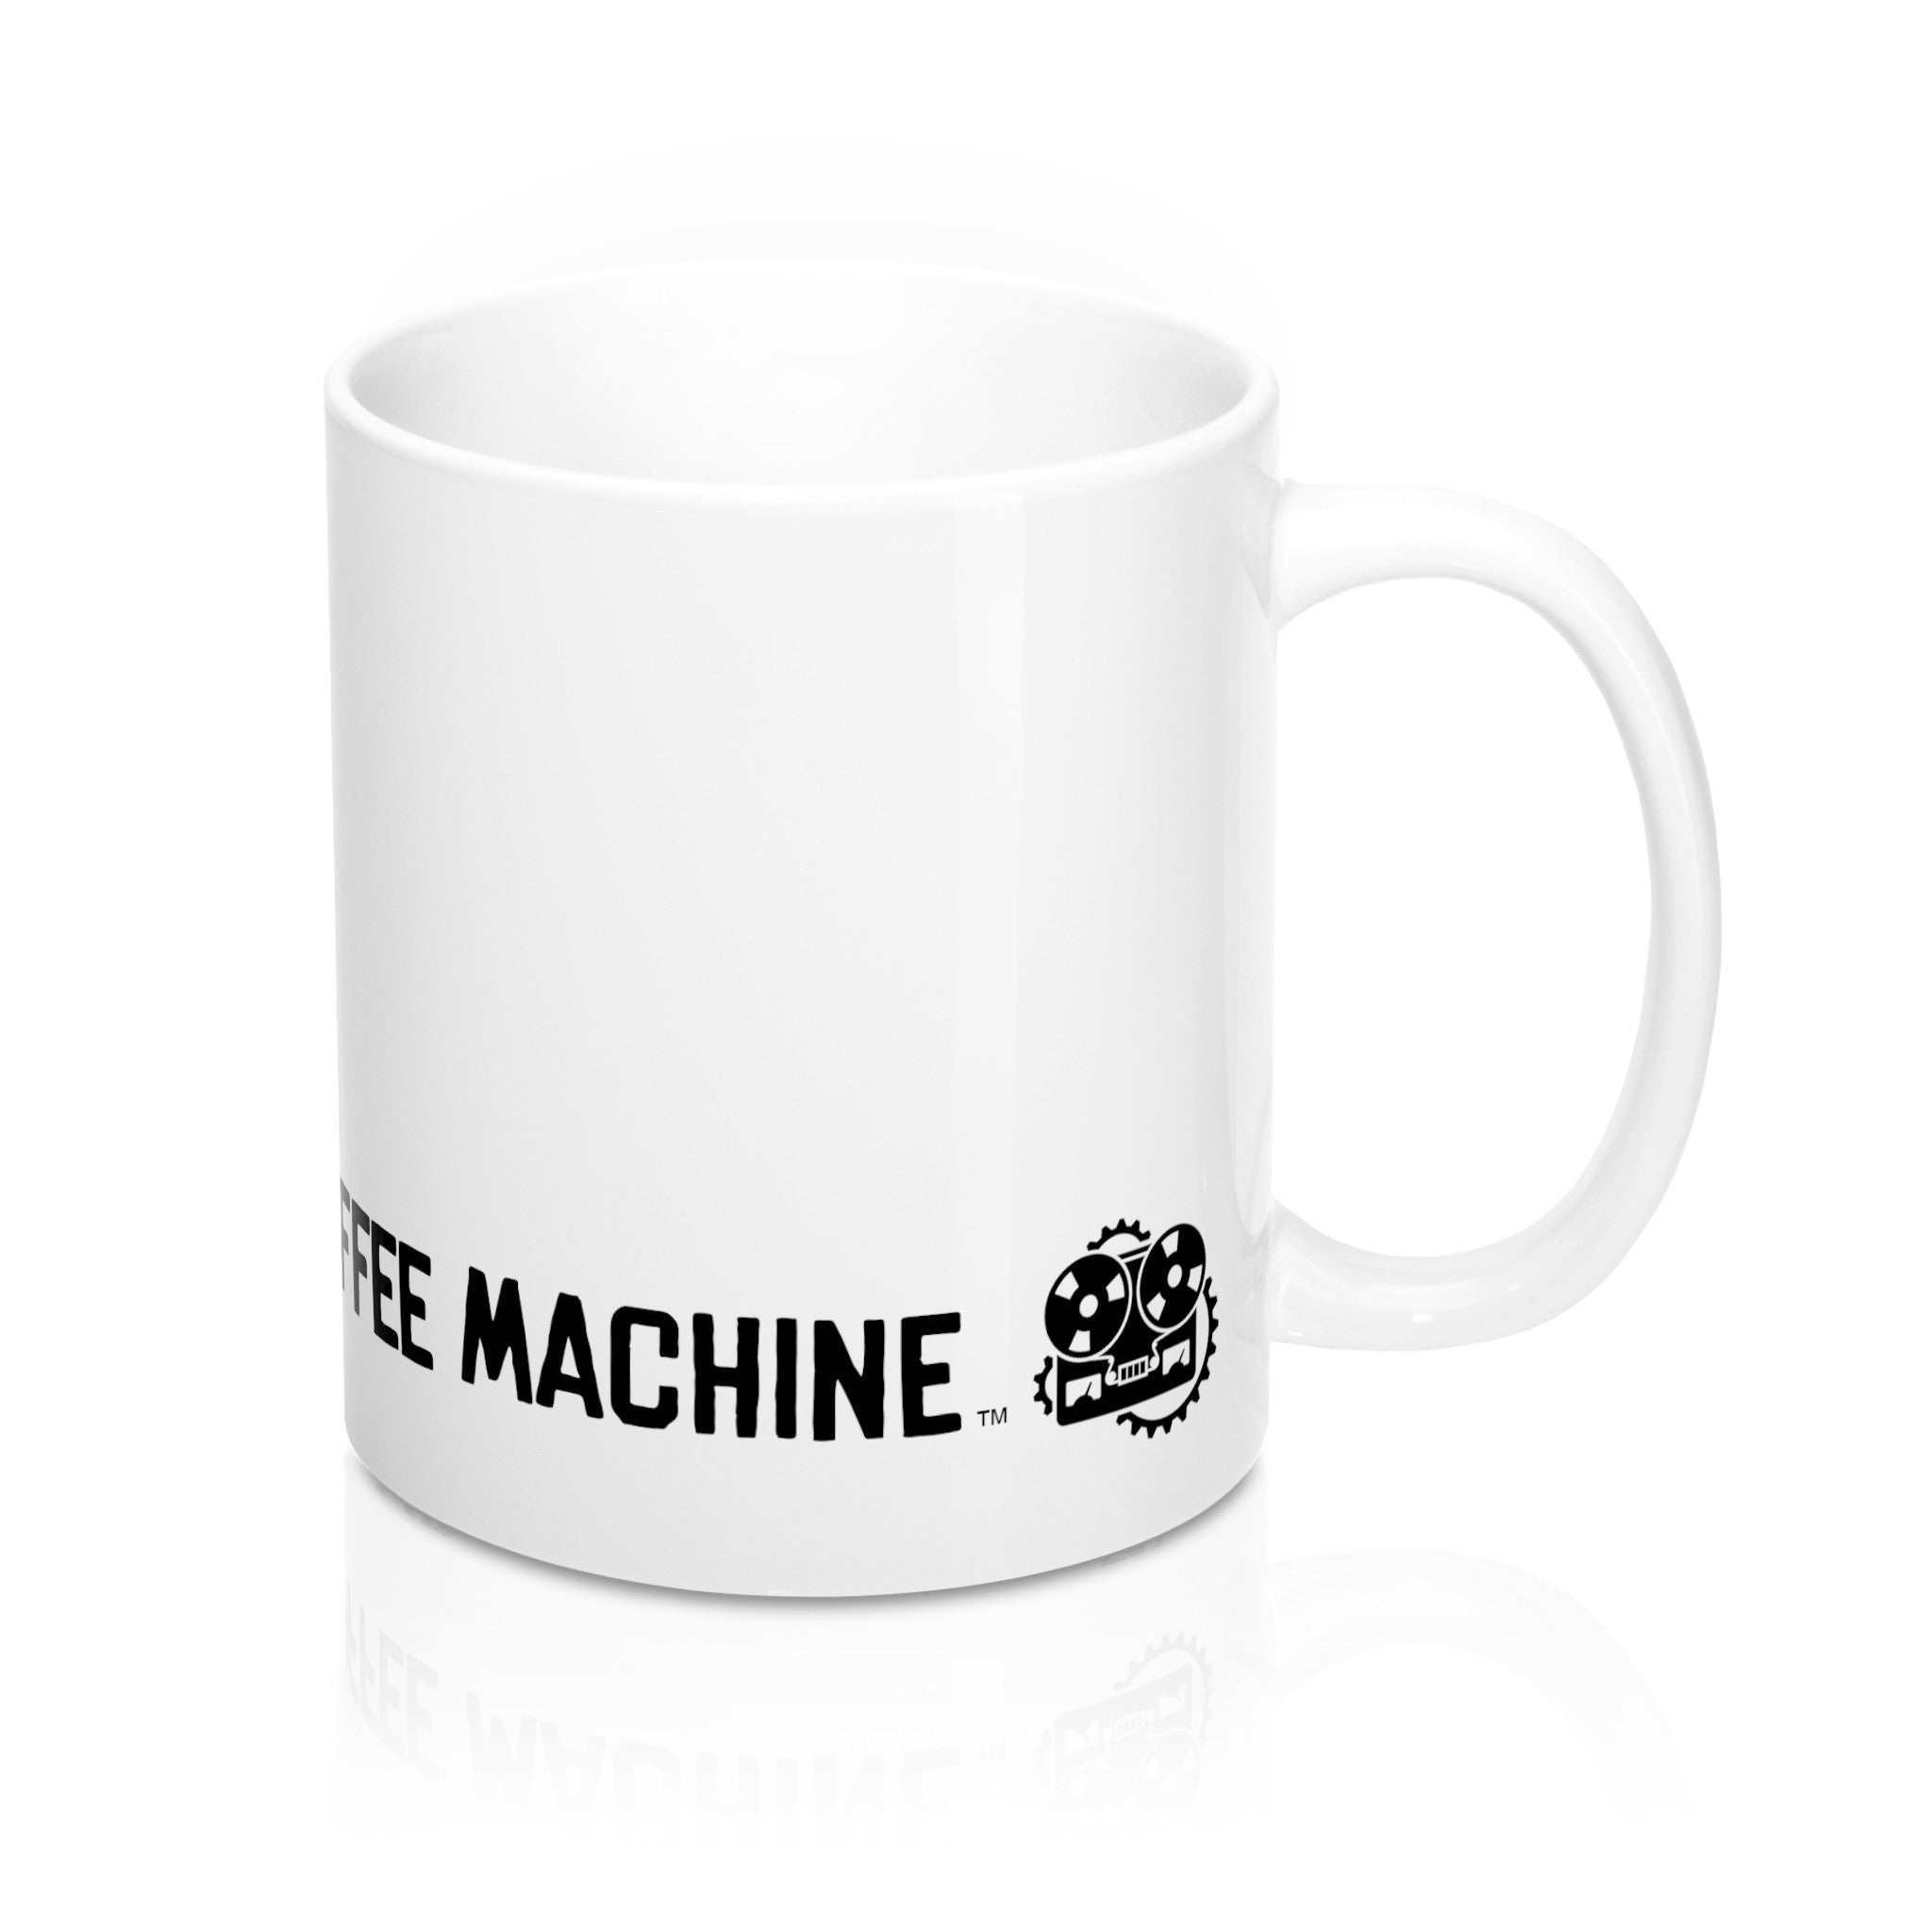 Unstoppable Coffee Machine Wrap Mug